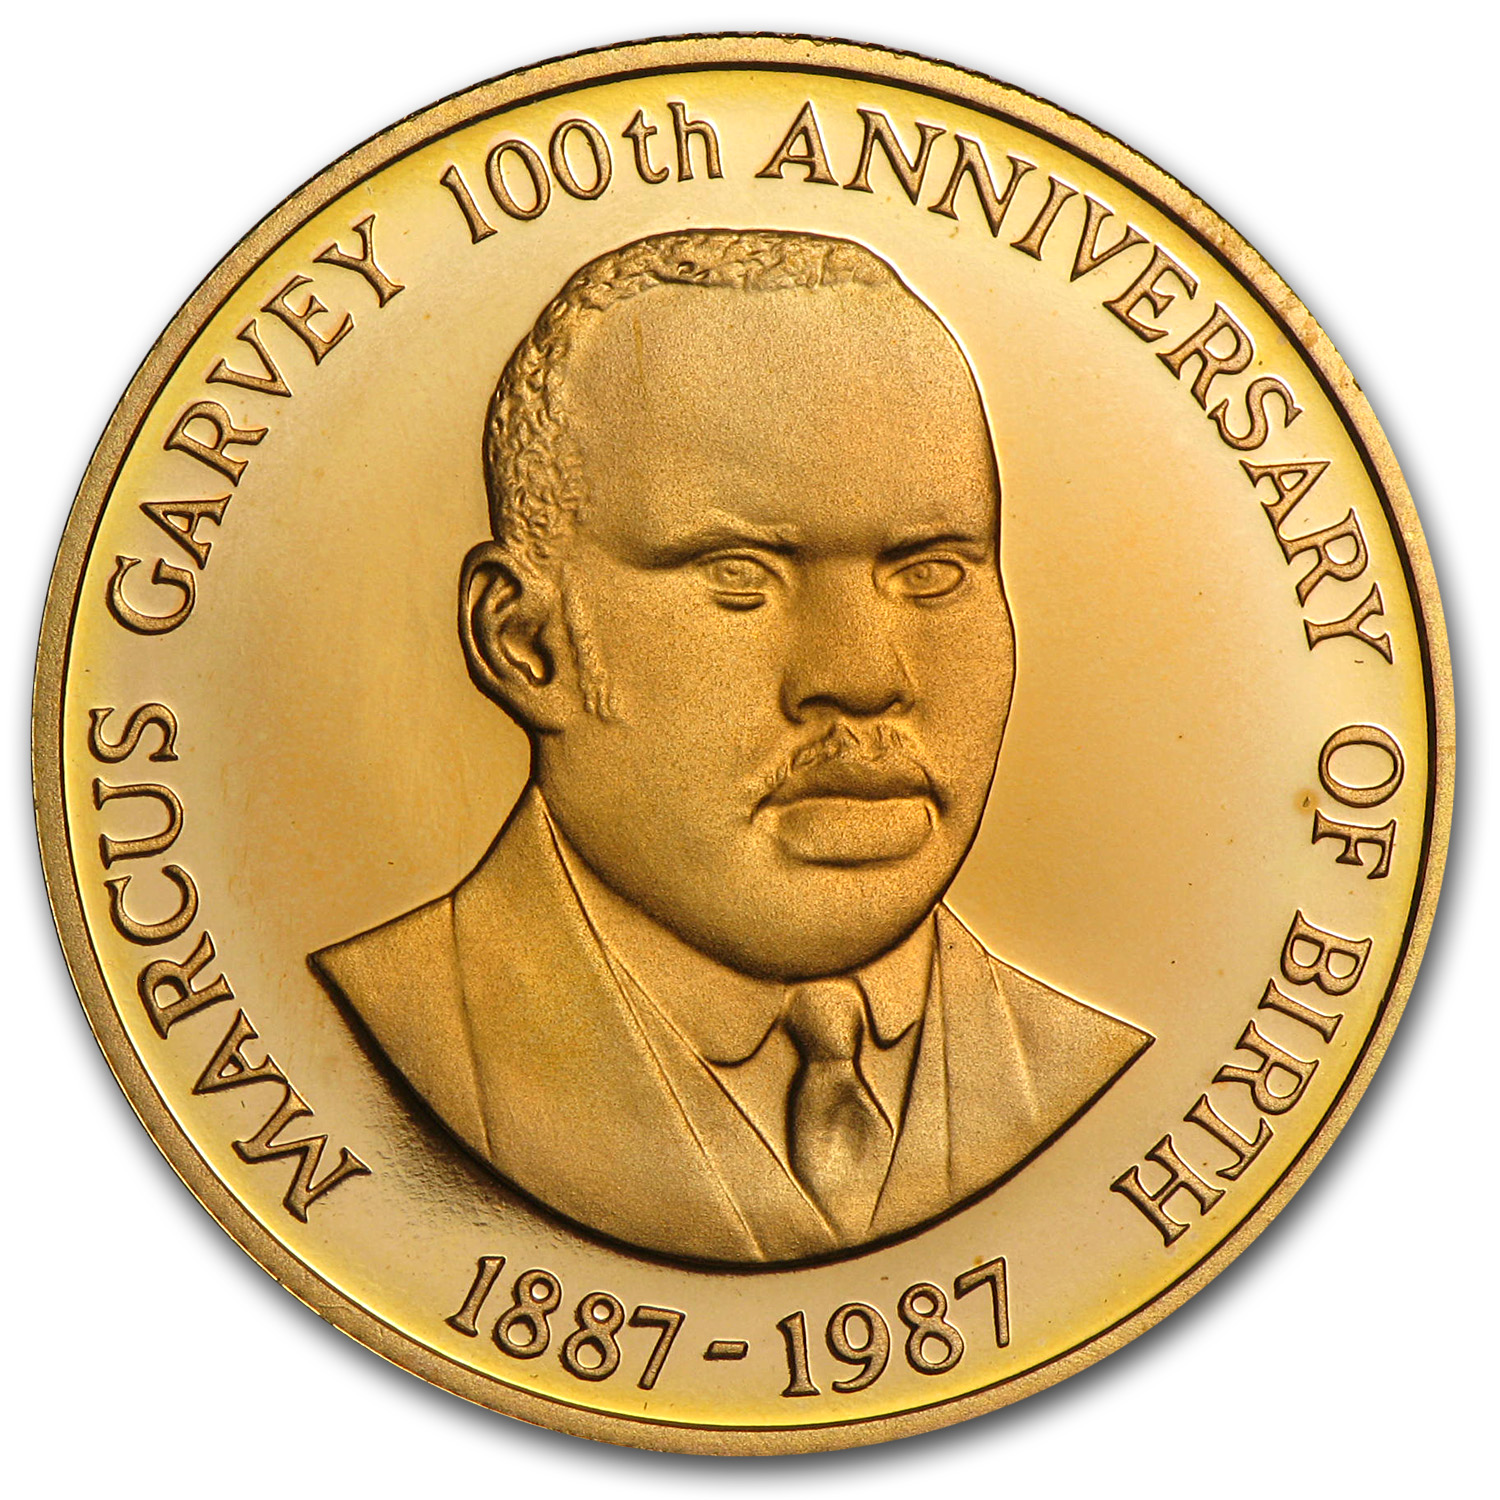 Jamaica 1987 Gold 100 Dollars Proof Marcus Garvey